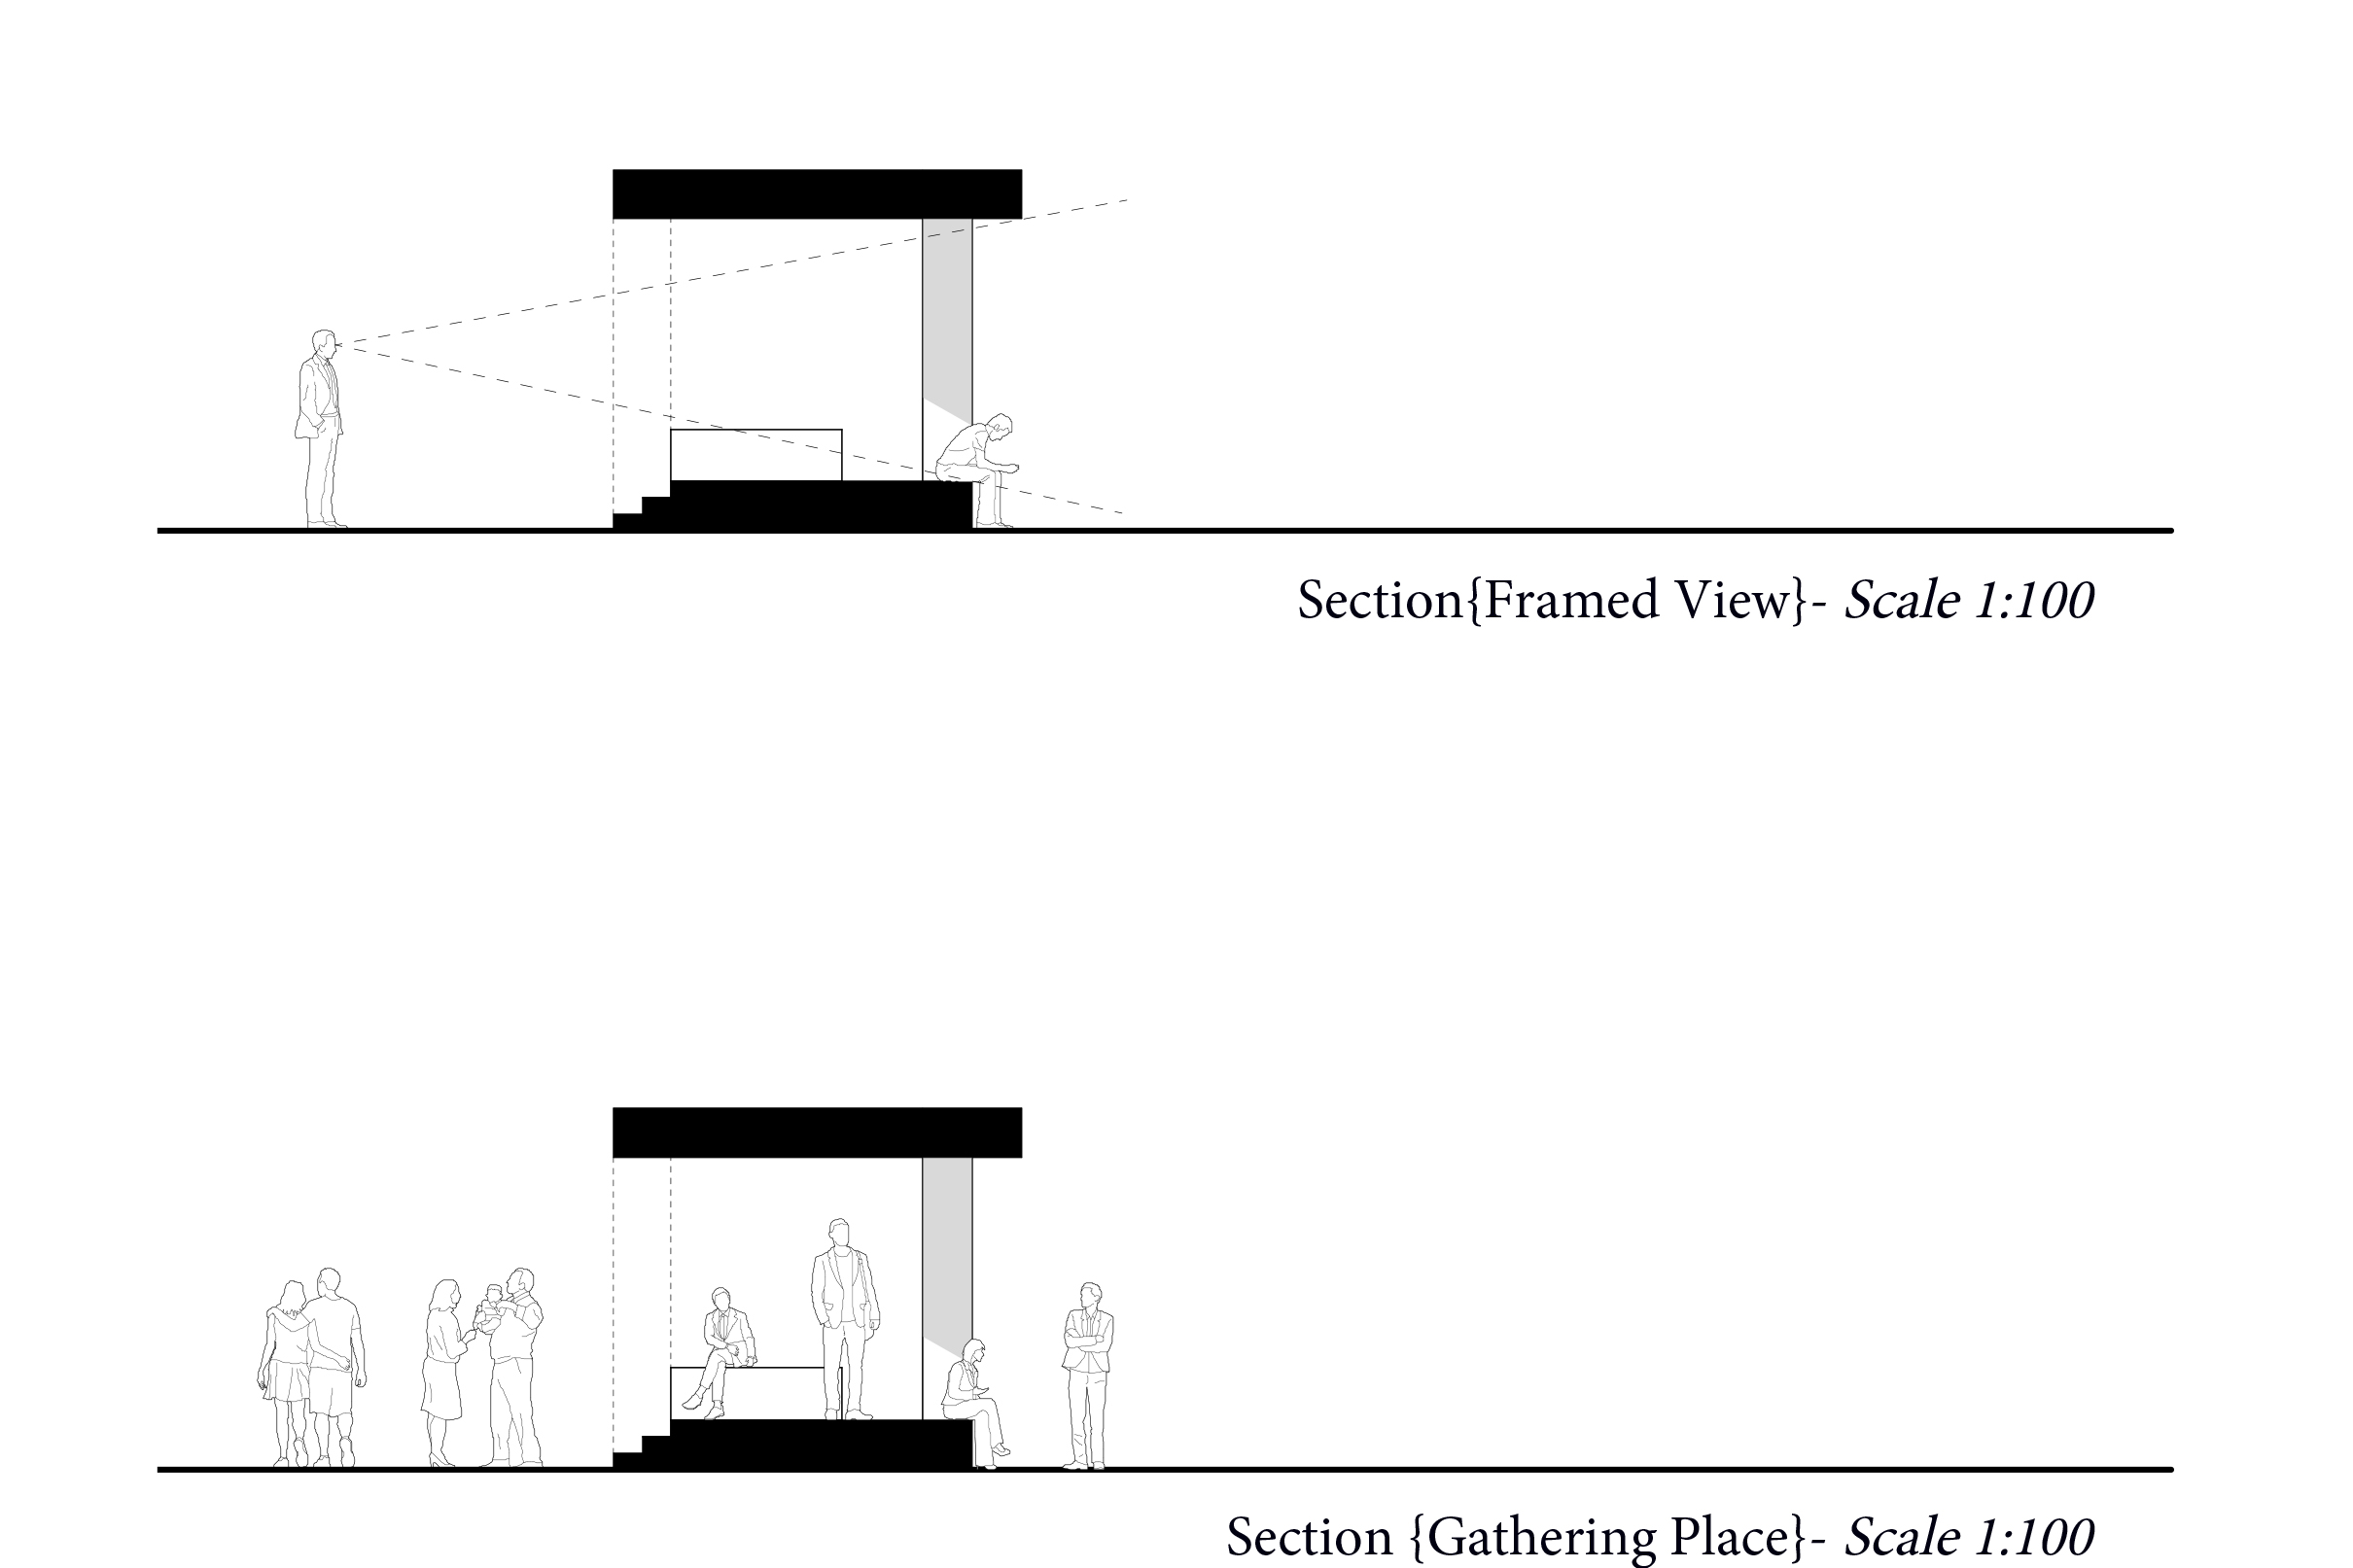 001-Sections.jpg